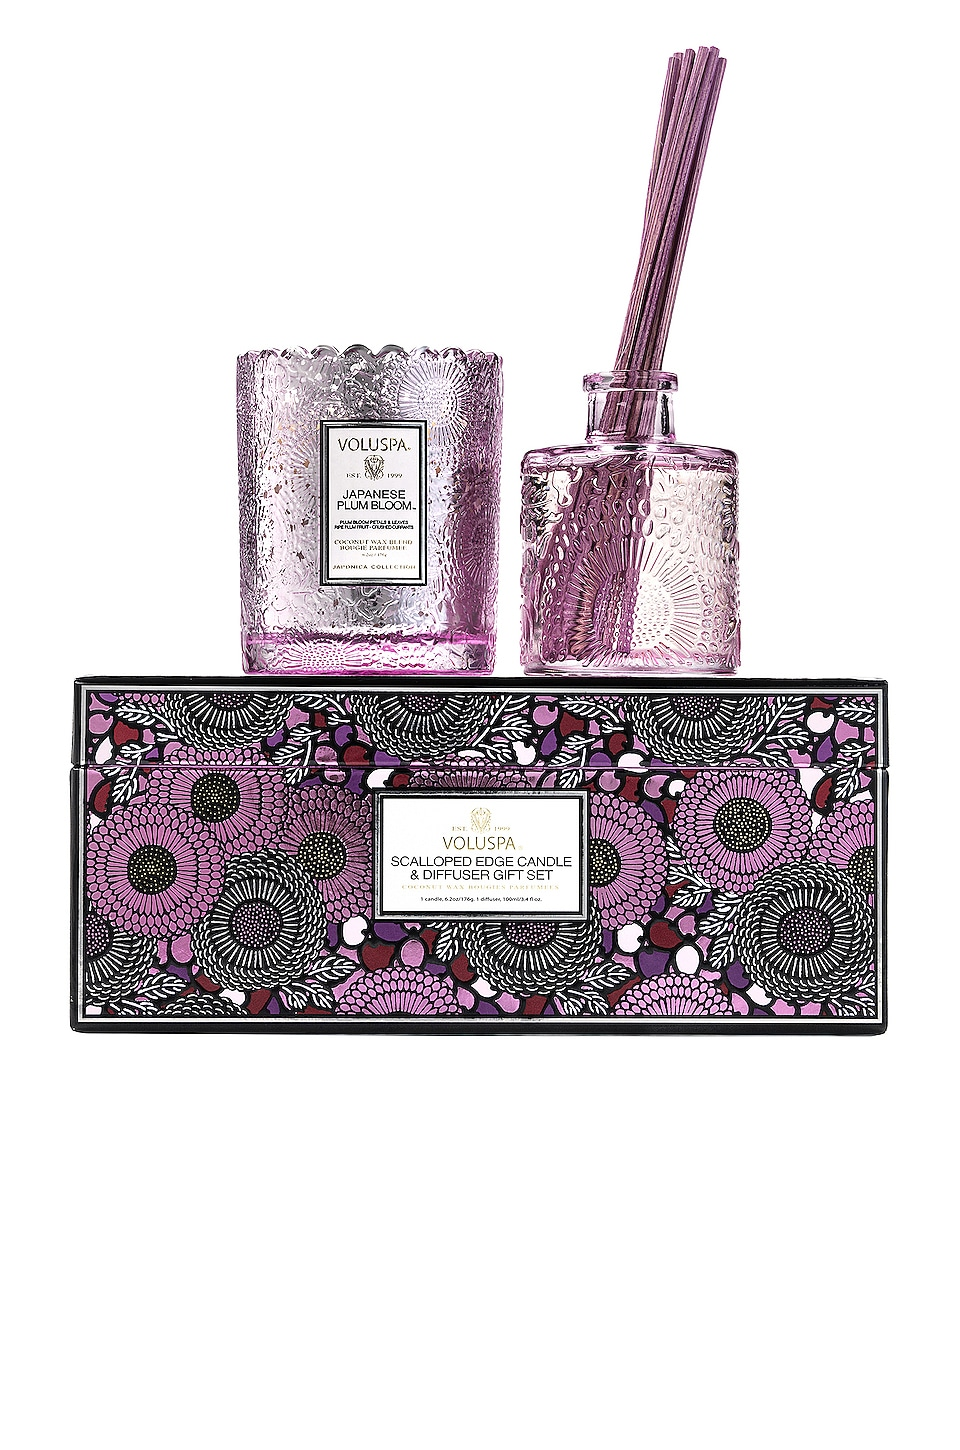 Voluspa Japanese Plum Bloom Scalloped Candle & Diffuser Gift Set in Japanese Plum Bloom